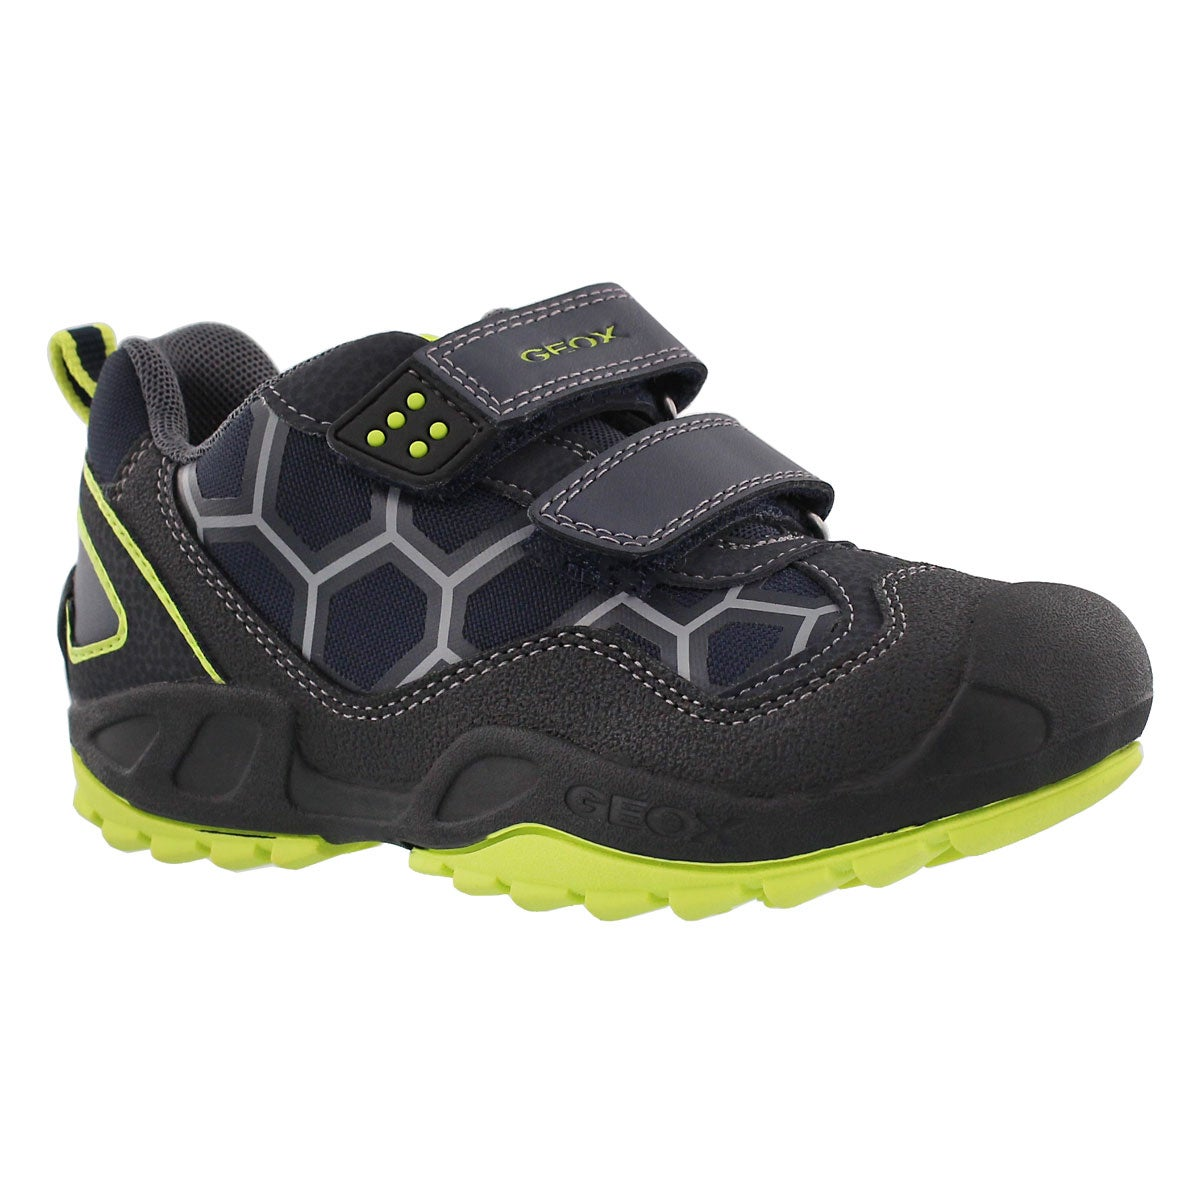 Bys New Savage nvy/lime sneaker